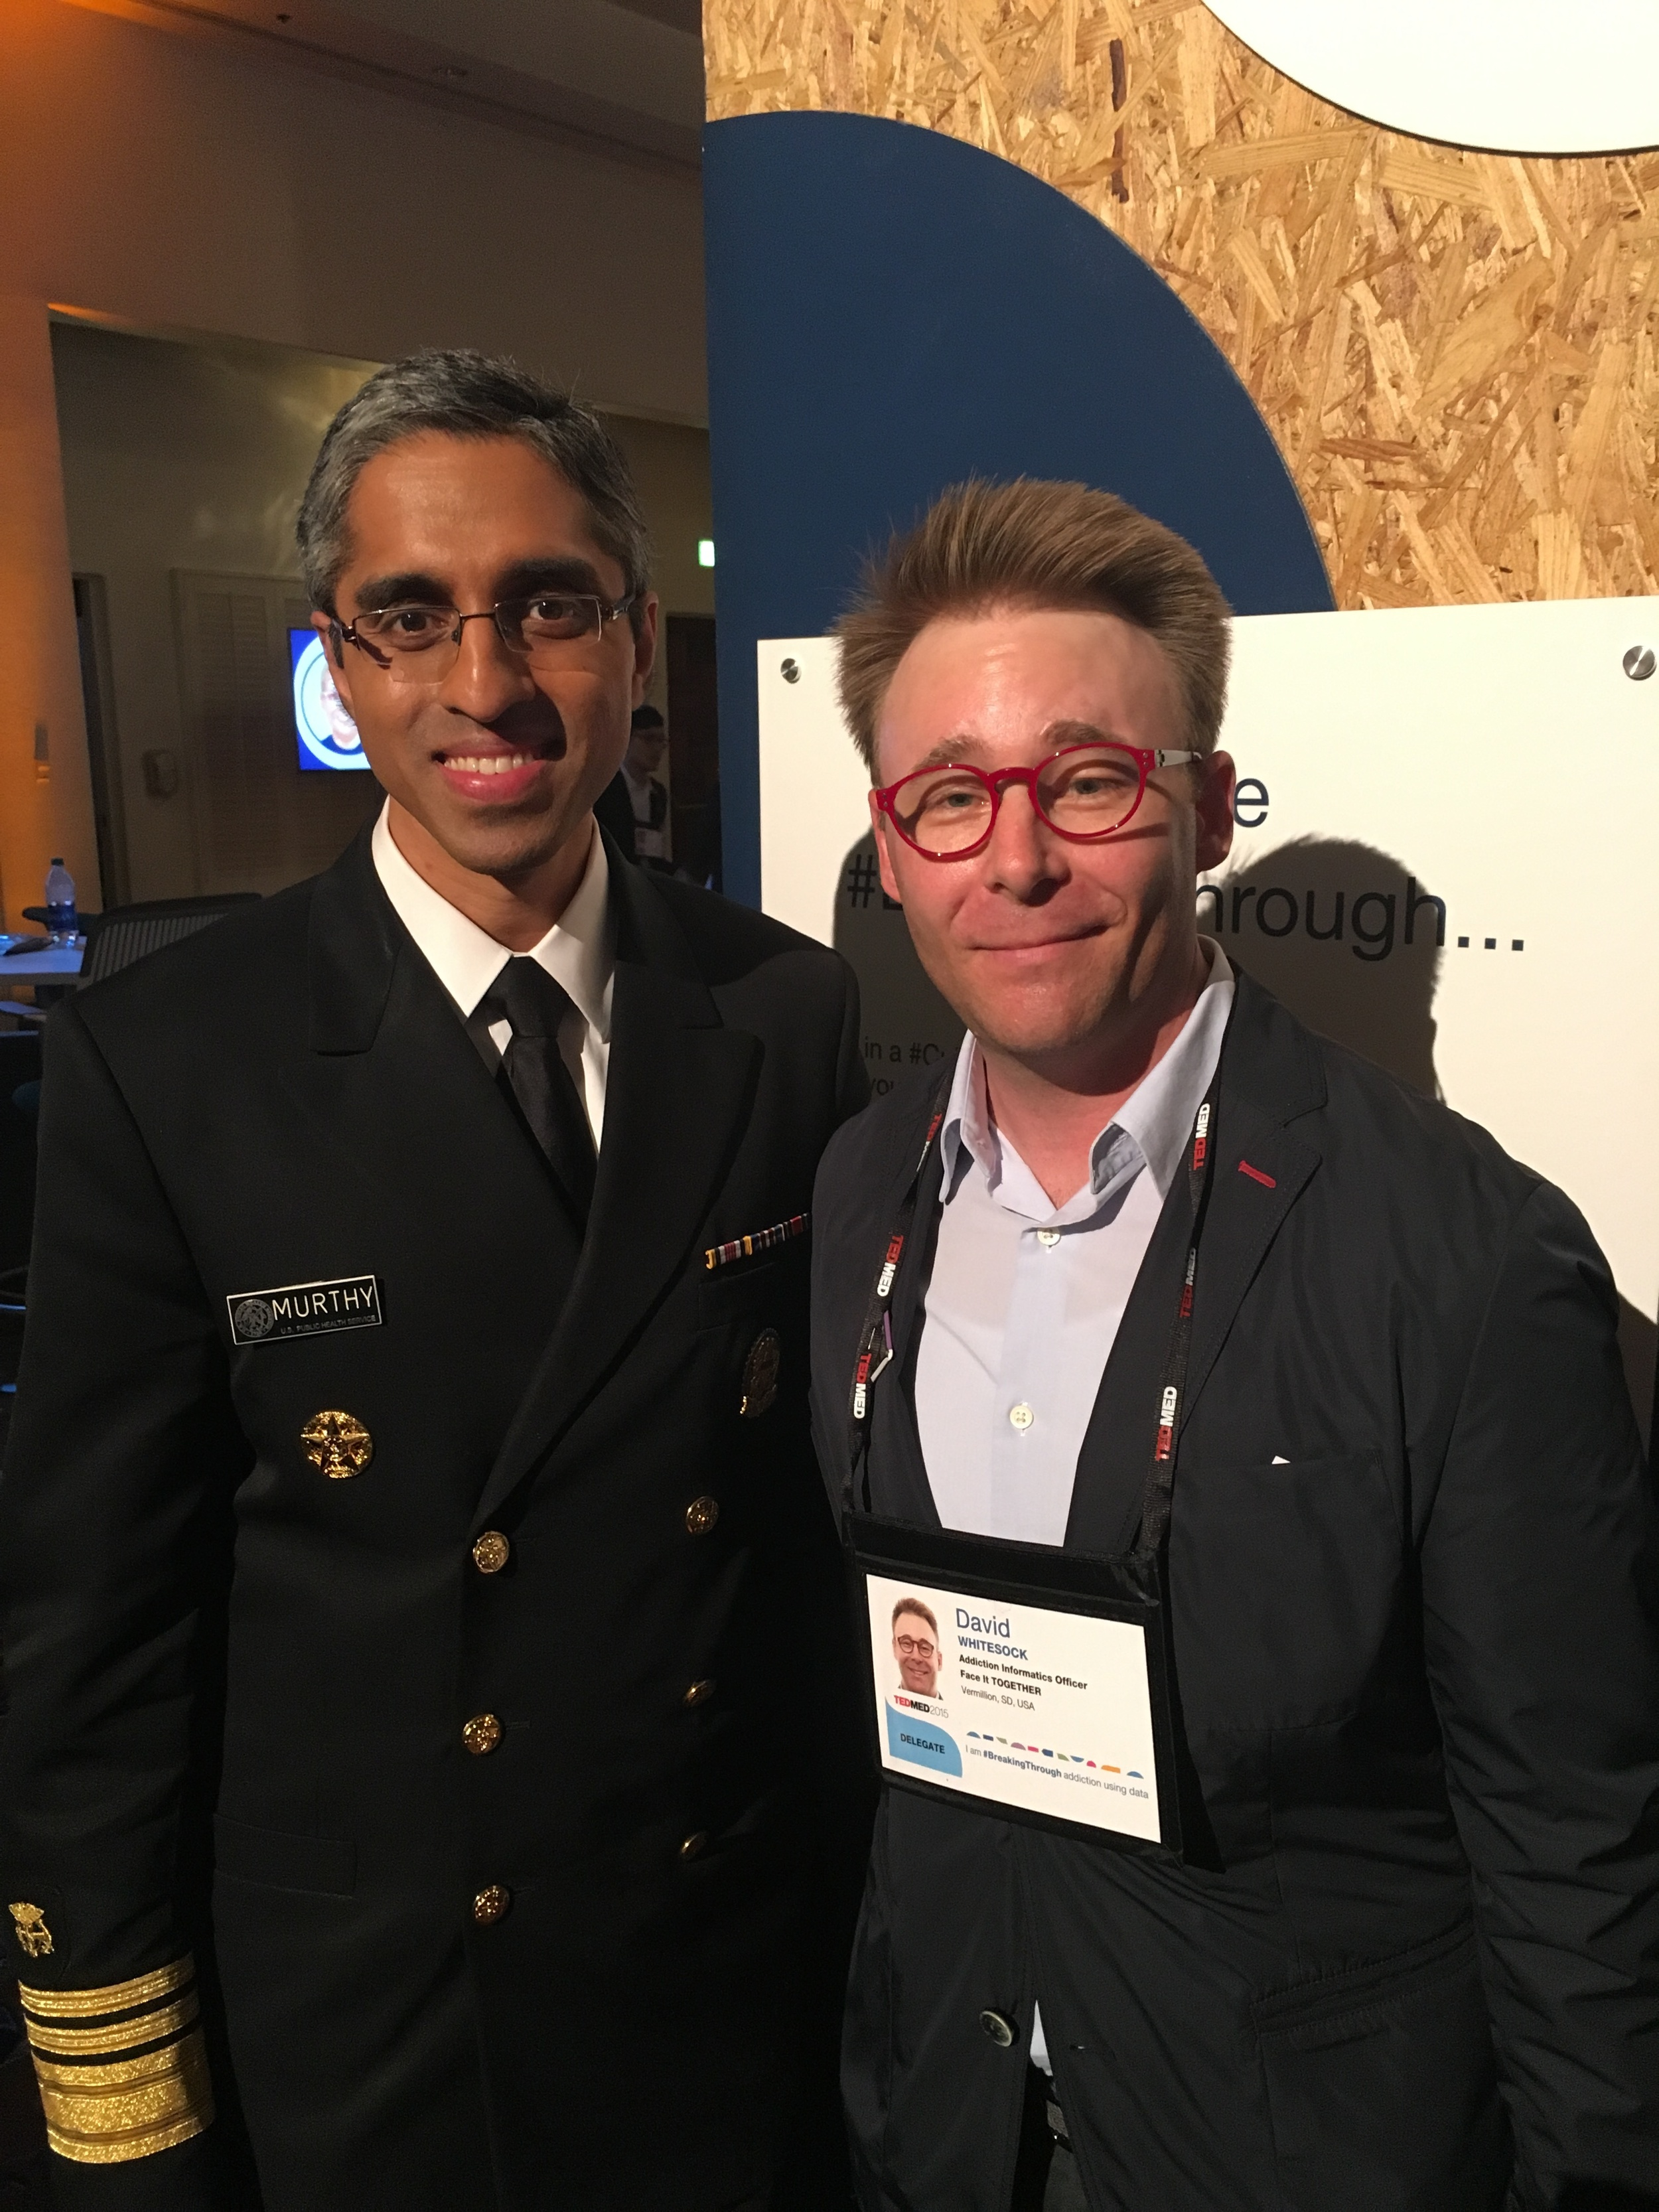 With U.S. Surgeon General, Vivek Murthy at TEDMED, November 20, 2015, Palm Springs, CA.